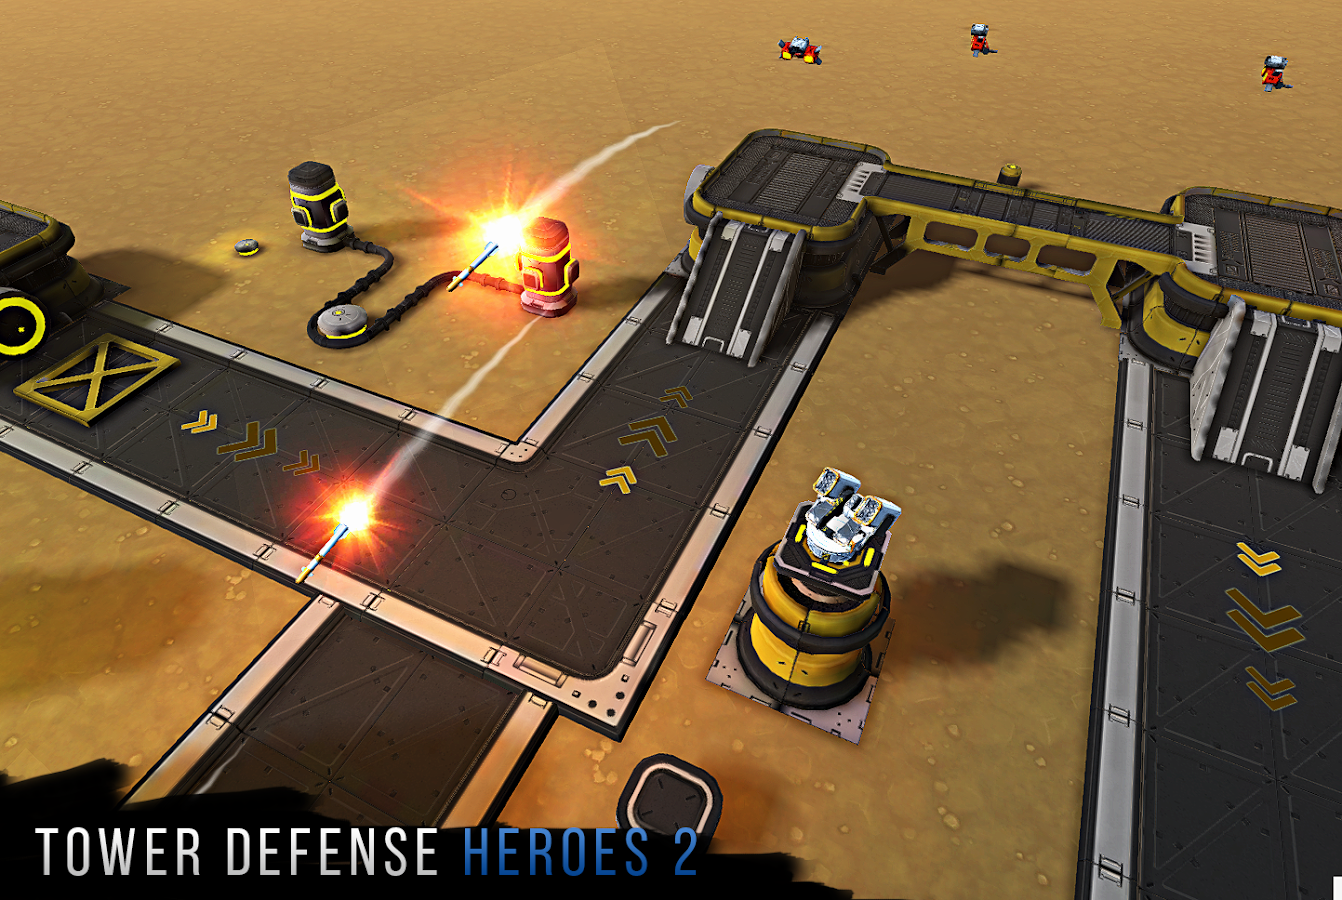 Tower Defense Heroes 2 Screenshot 10